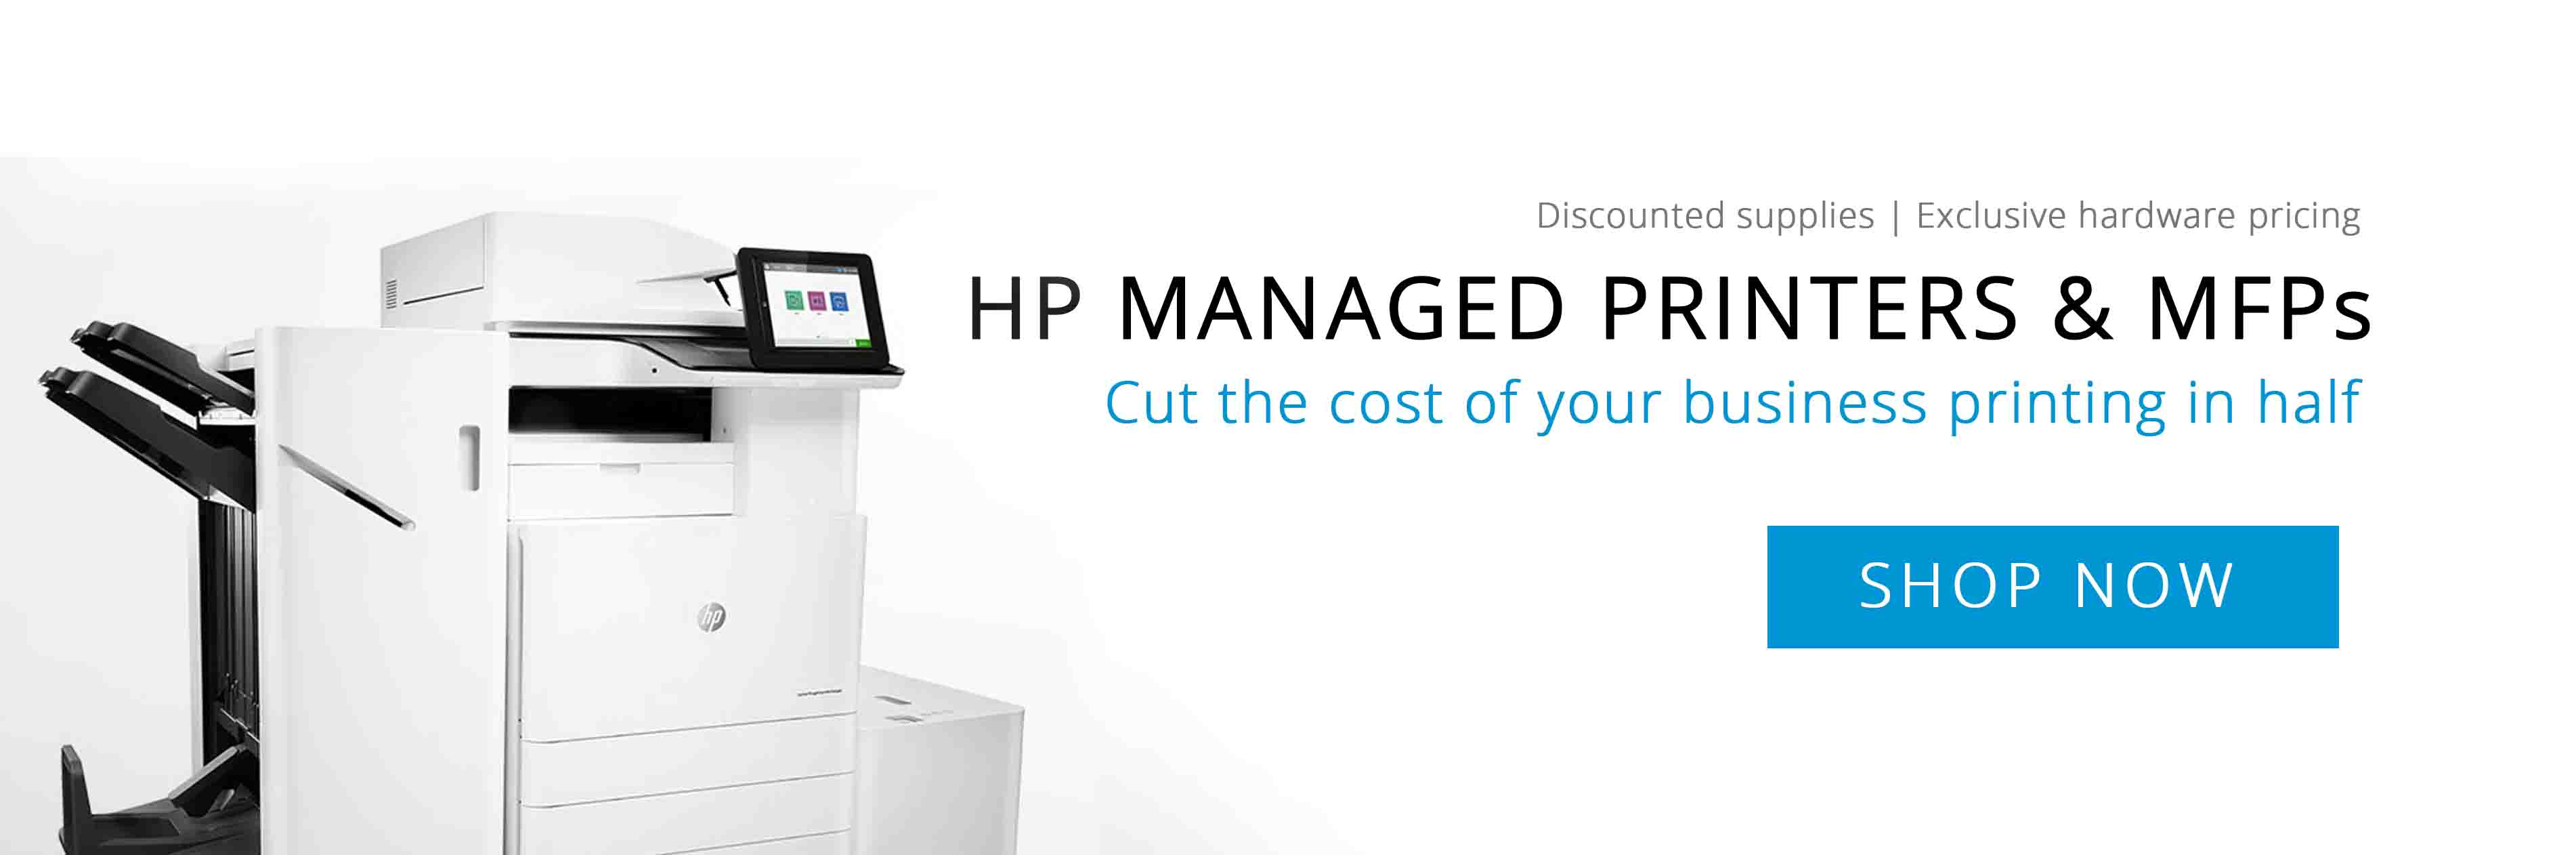 Homepage main - HP Managed printers & MFPs